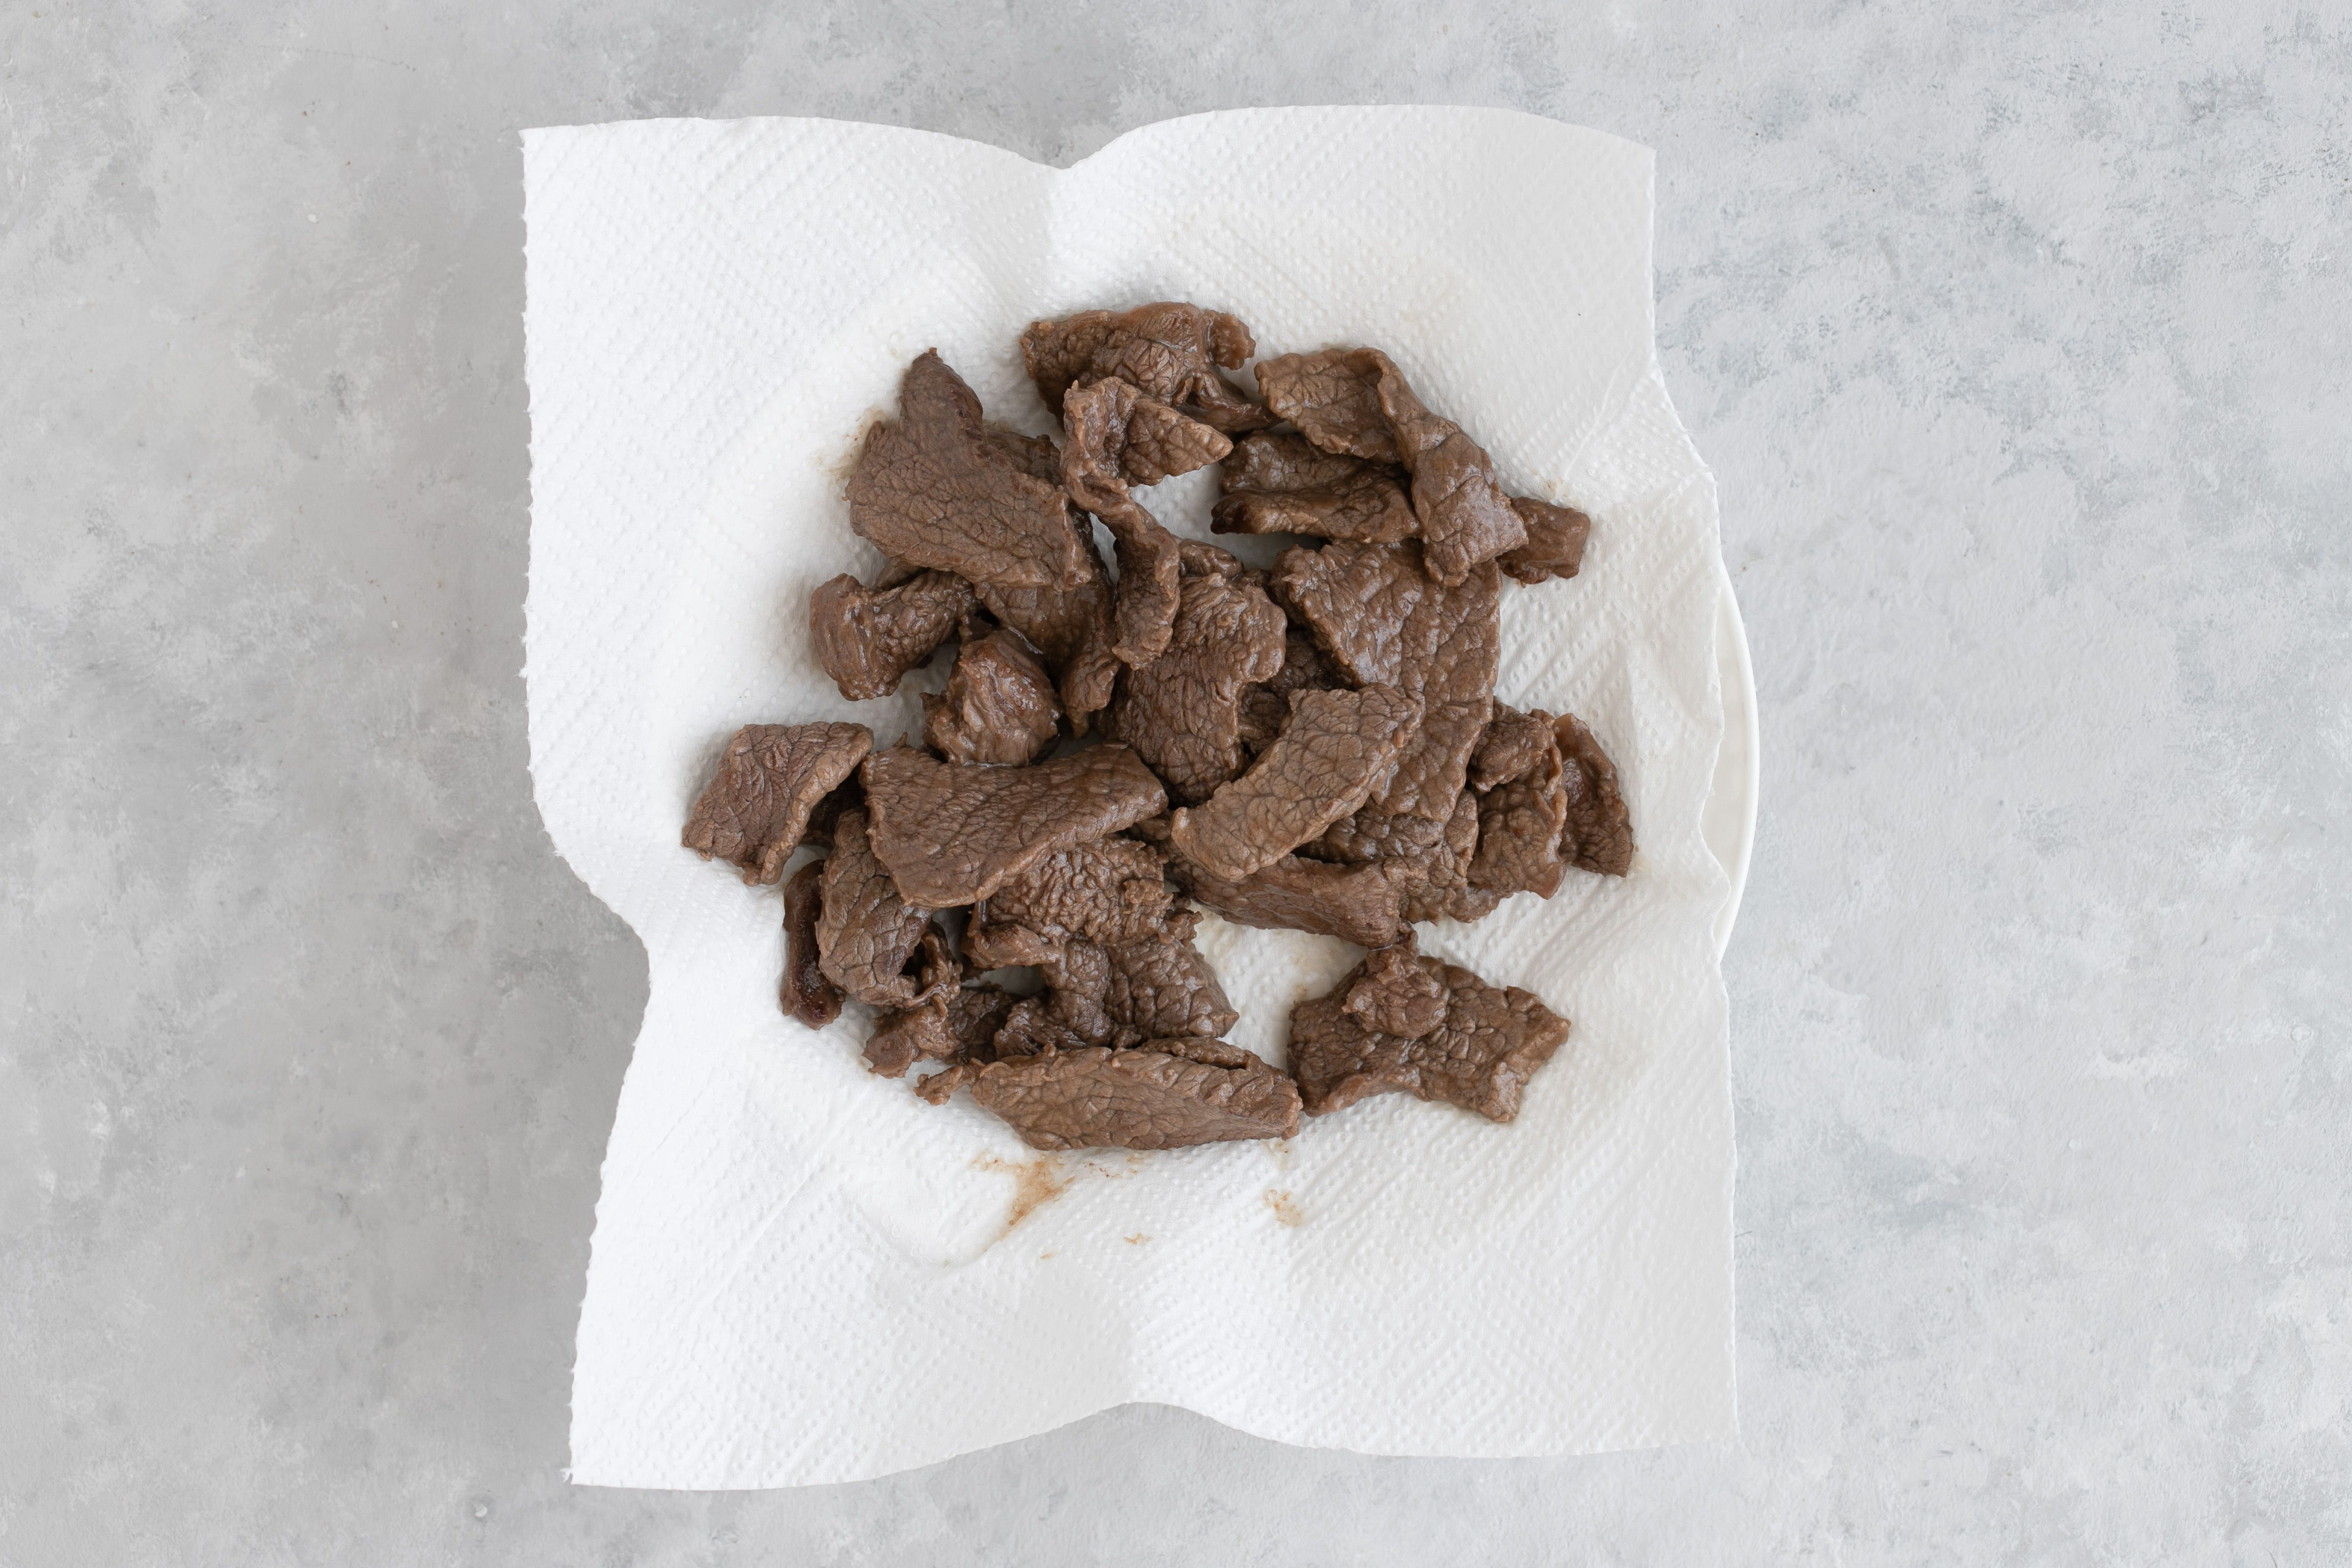 Beef draining on paper towel